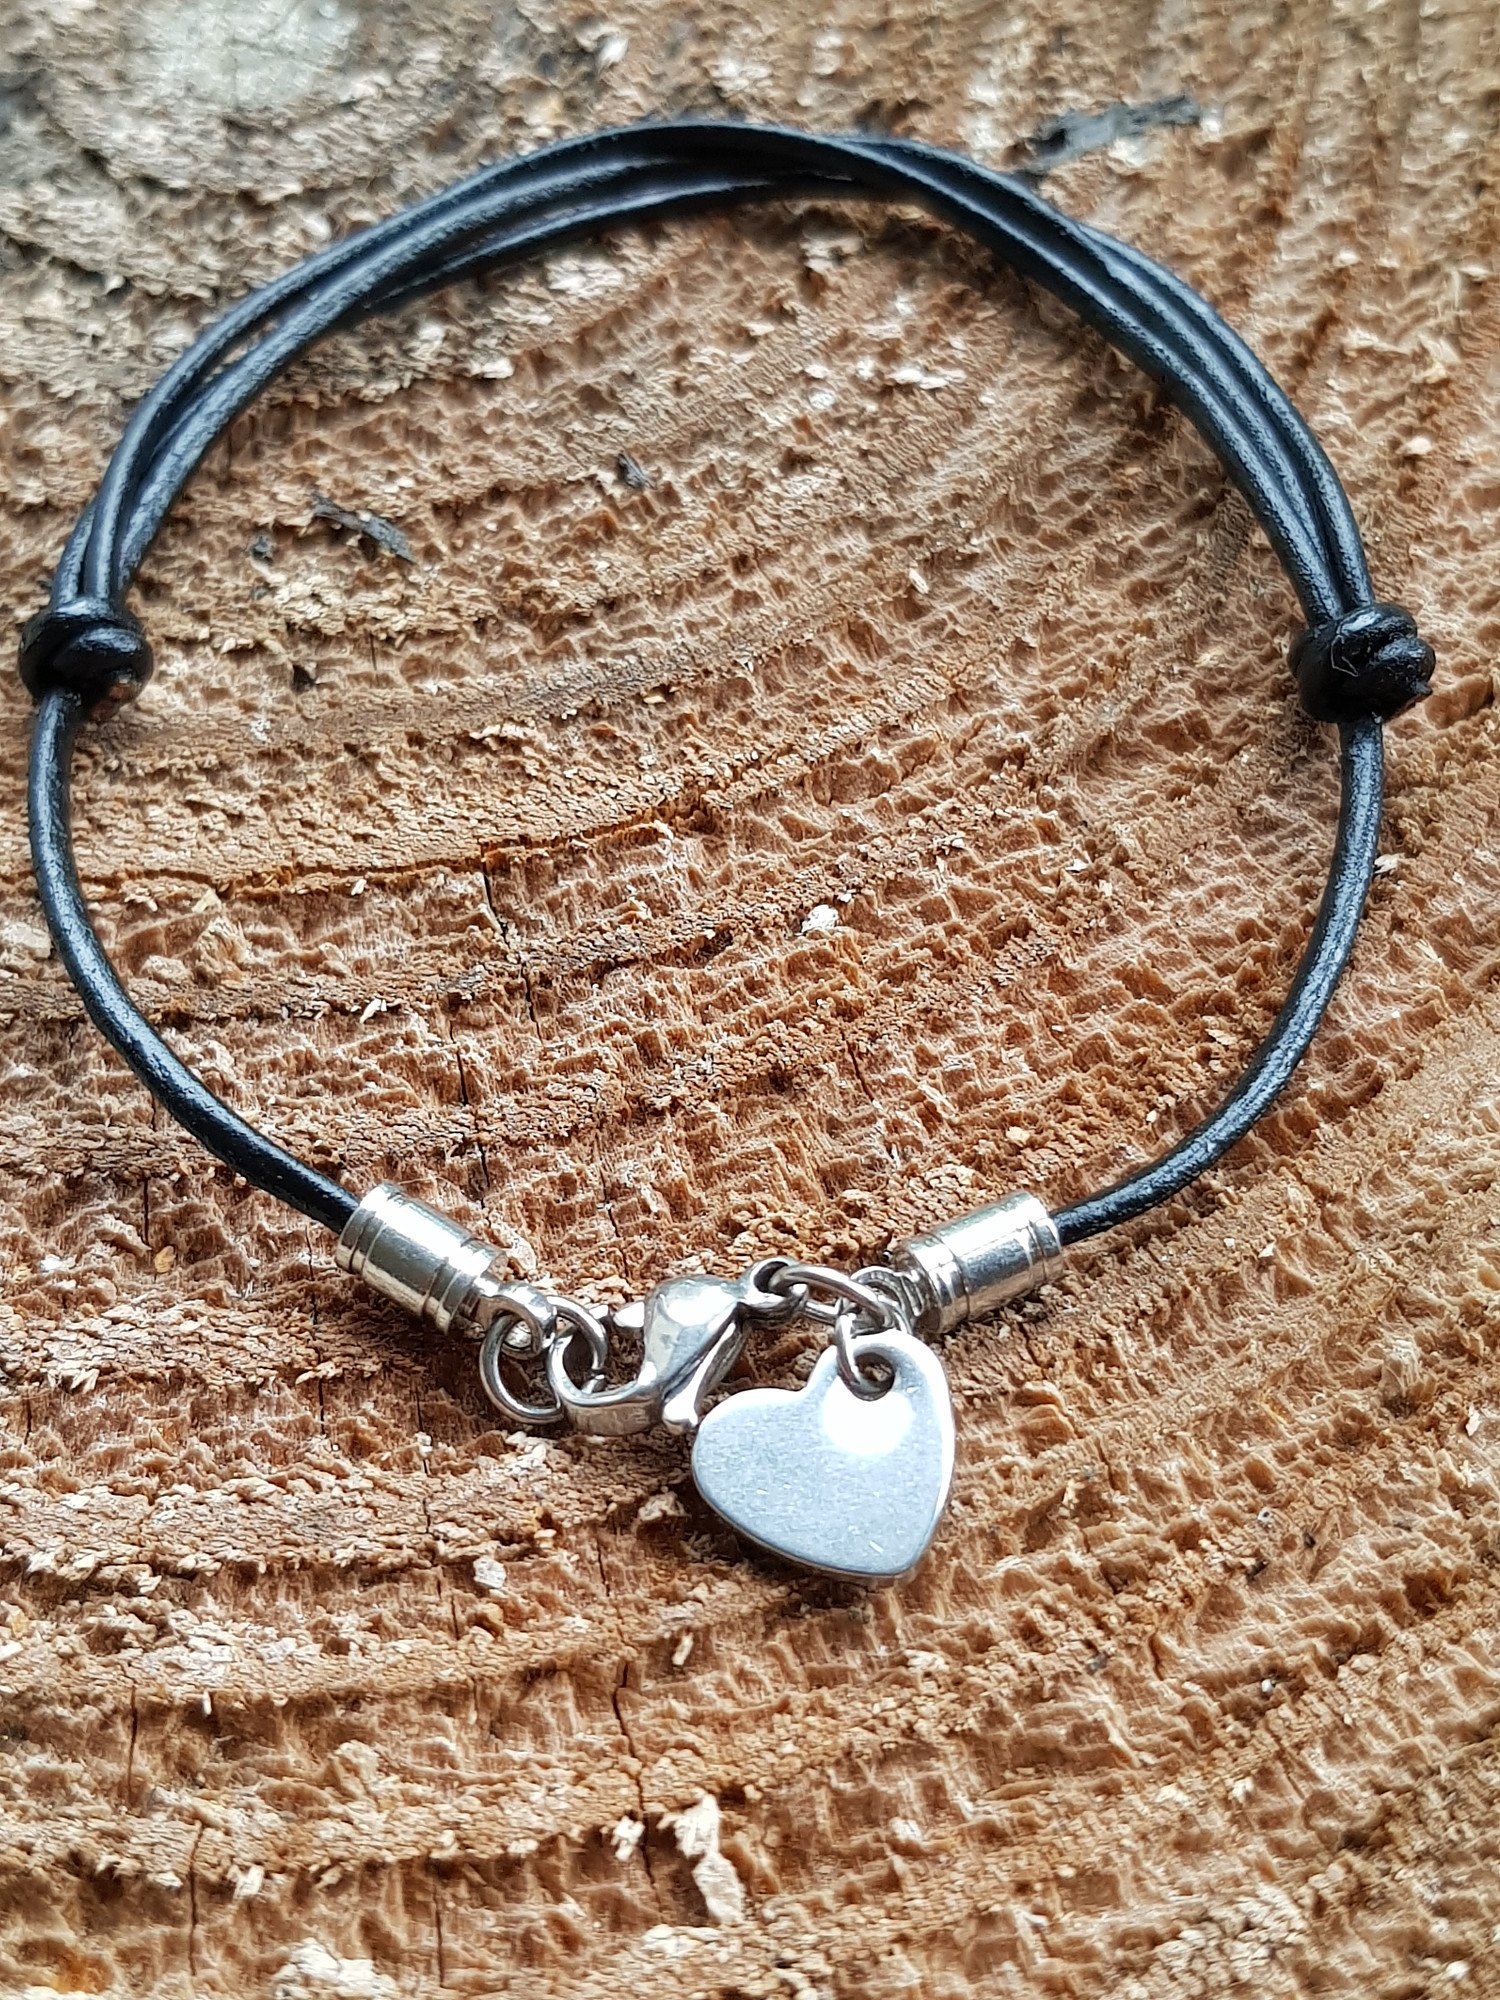 SILVER & FASHION JEWELLERY FOR WOMEN - £15 OR LESS - FREE DELIVERY - GIFT BOX INCLUDED